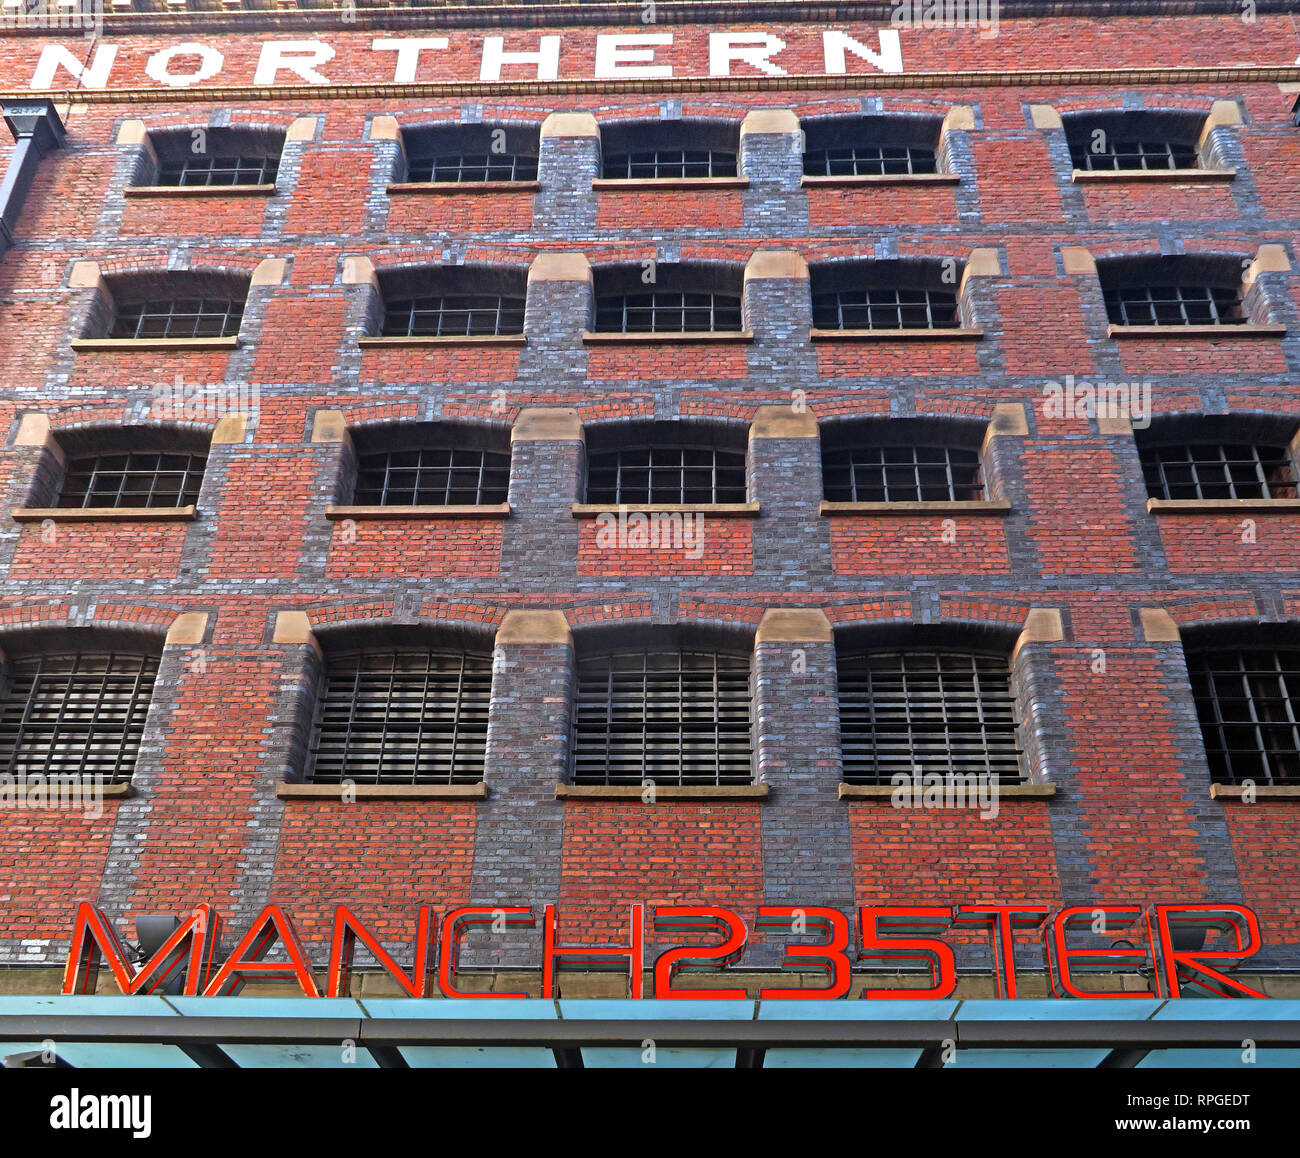 Manchester235 Manch235ter Casino, Great Northern Warehouse, Deansgate, Manchester, England, UK - 2 Watson St, Manchester M3 4LP - Stock Image